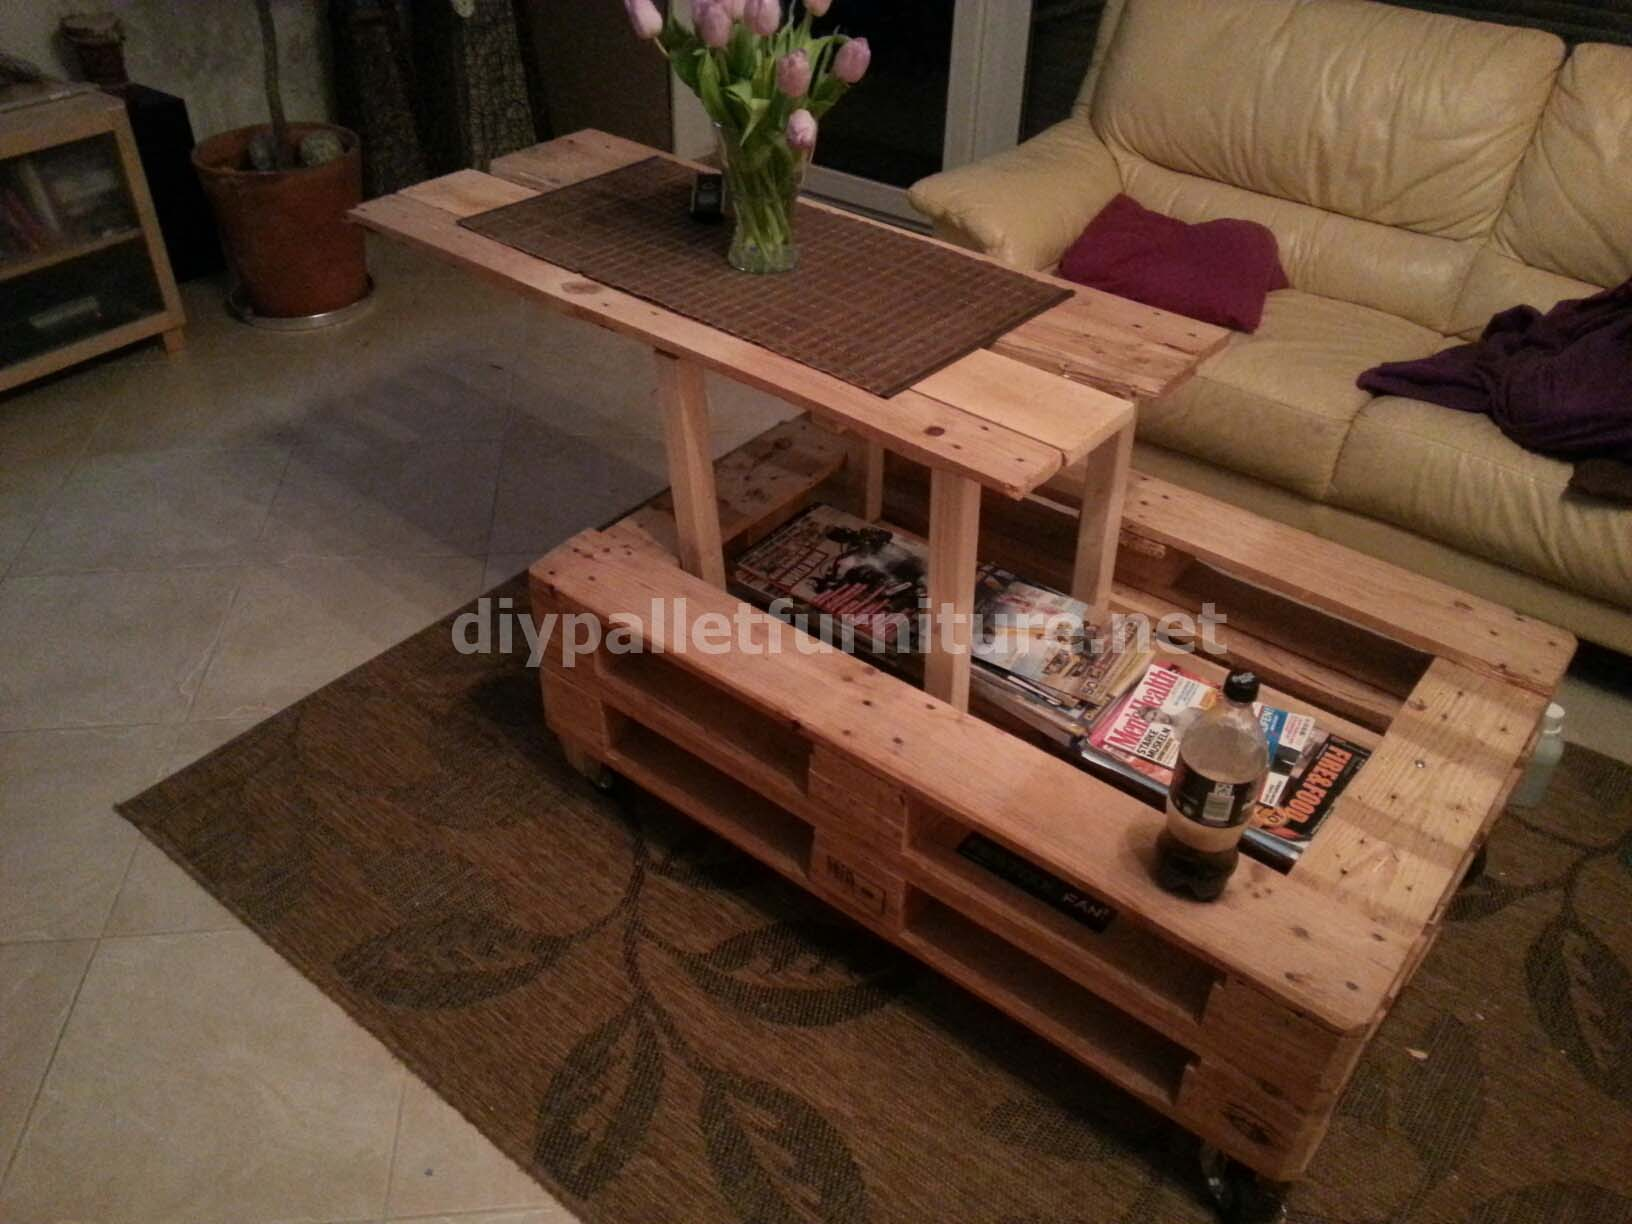 pneumatic pallet tablediy pallet furniture diy pallet. Black Bedroom Furniture Sets. Home Design Ideas